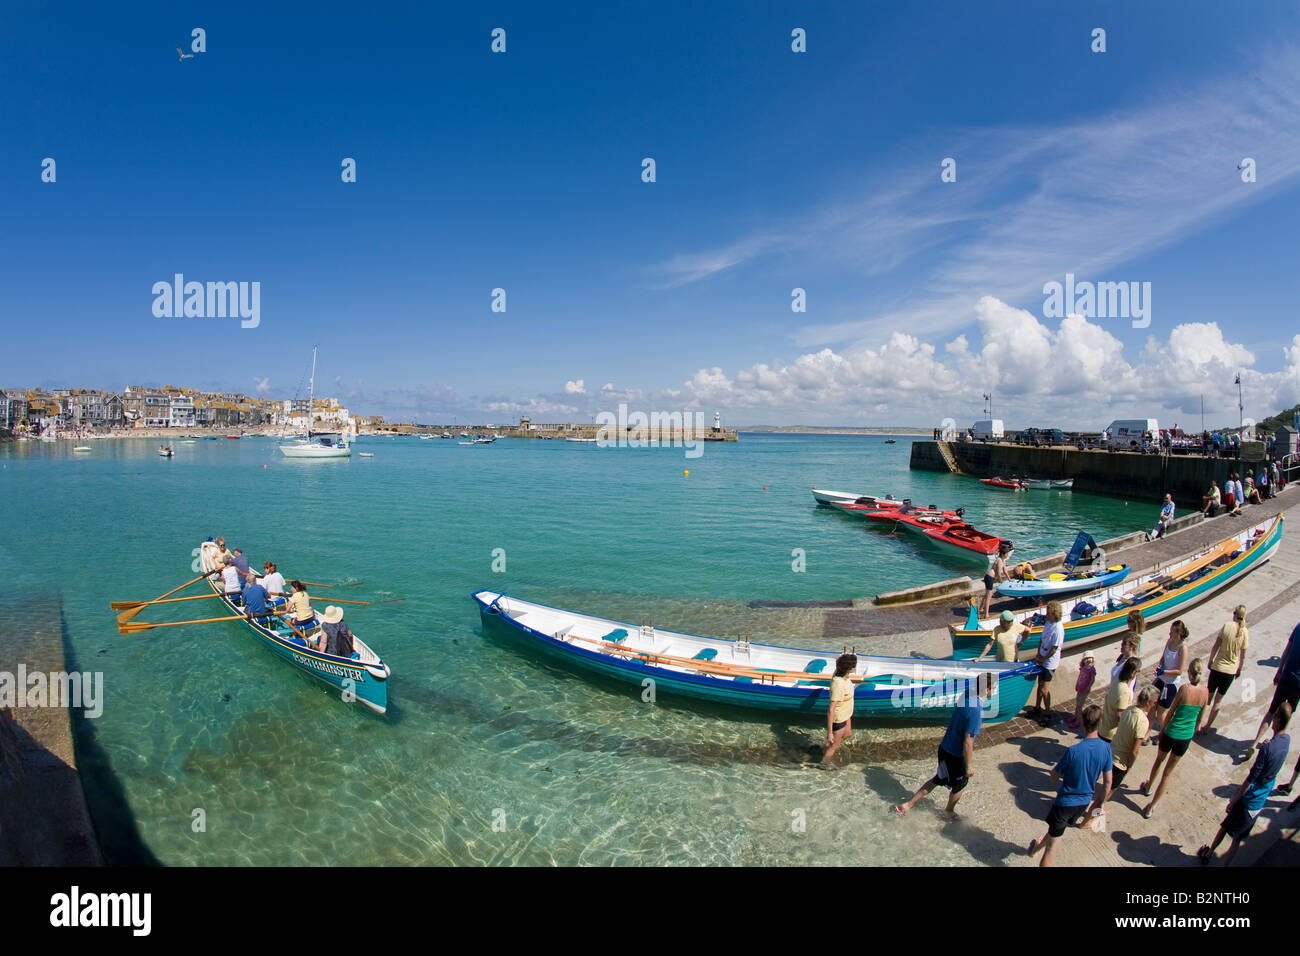 Youngsters rowing a cornish pilot gig in the old harbour harbor in summer sunshine St Ives Cornwall West Country - Stock Image